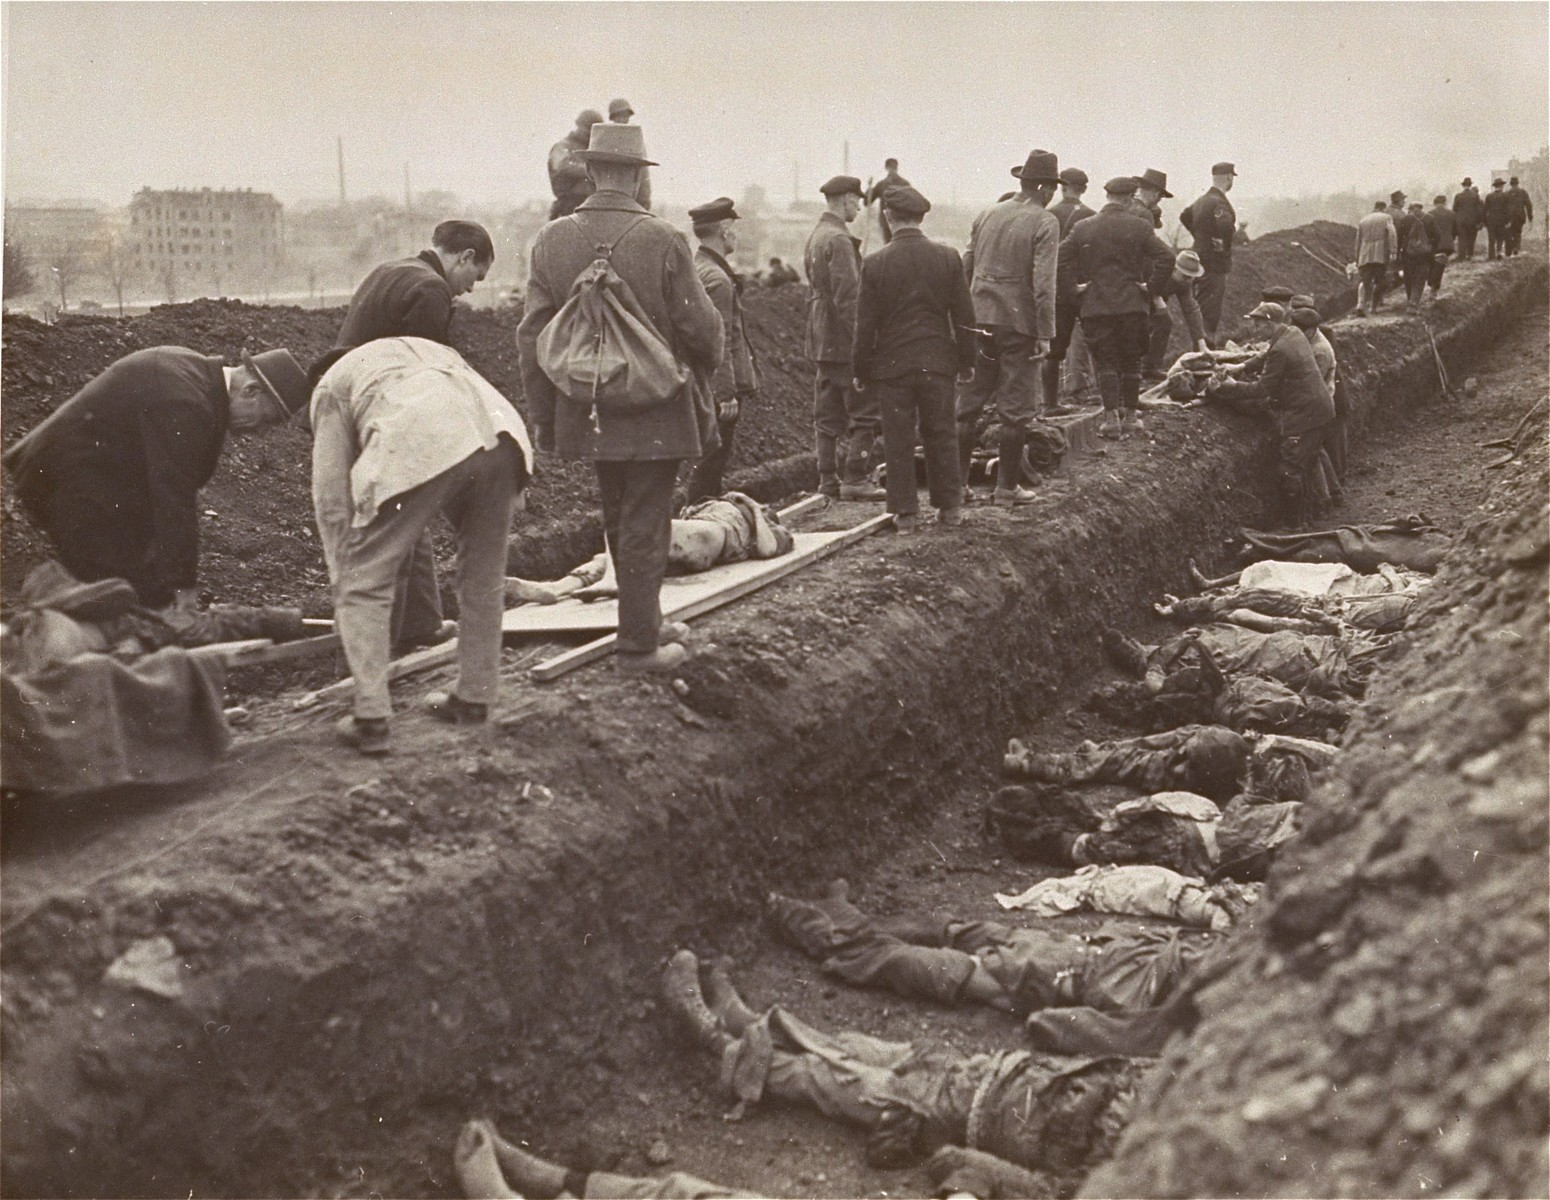 "German civilians from the town of Nordhausen bury the bodies of former prisoners found in the Nordhausen concentration camp in a mass grave.  Original caption reads ""The bodies of hundreds of former slave workers of the Nazis were discovered by soldiers of the Third Army, in the ""Lager-Nordhausen"". Nazi concentration camp in Nordhausen, Germany, which usually contained between 3,000 and 4,000 prisoners.  The dead lay beside the sick and the dying and the Nazi camp masters had made no attempt to check the contagious diseases and gangrene suffered by maltreated prisoners of many nationalitites.  The bodies, which were no more than skeletons, were buried by German civilians who were also forced to dig mass graves. The few prisoners still alive, who had been beaten, maltreated in other ways and starved by the Nazis, have been removed to Allied hospitals.  Troops of the First U.S. Army entered Nordhausen, April 10, 1945.  The Reich city, 120 miles southwest of Berlin, was a manufacturing center for Nazi V-weapons""."